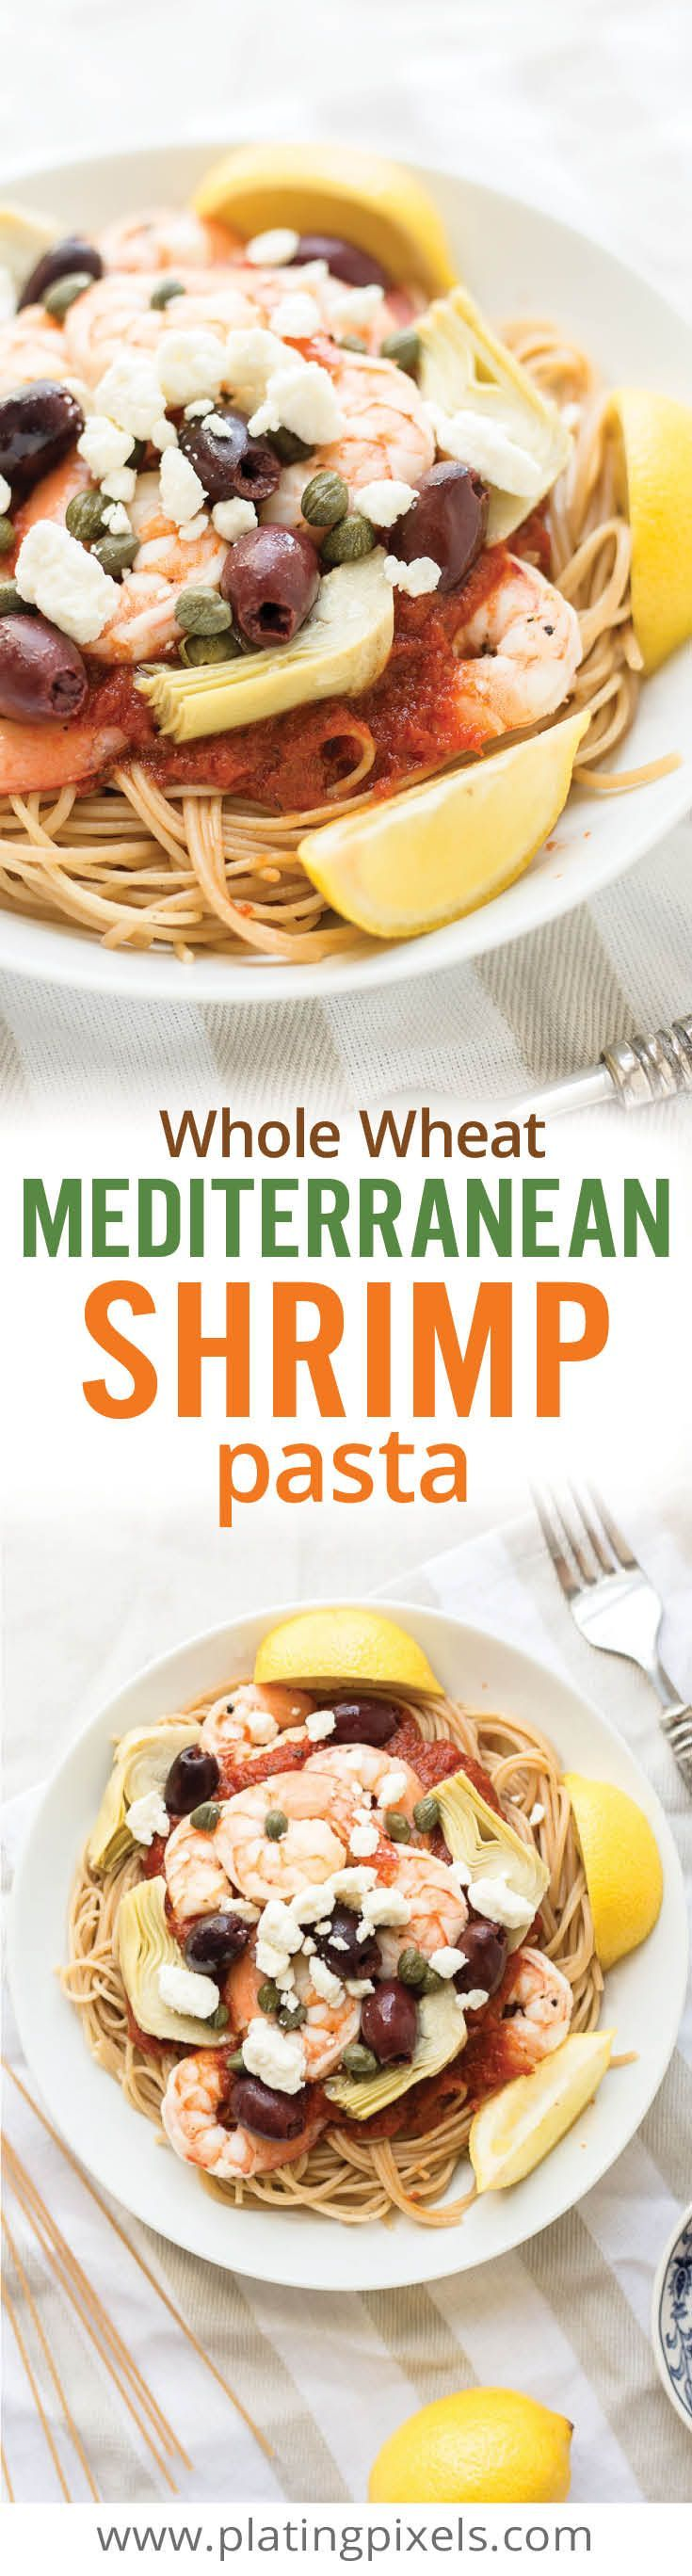 Healthy lightened up Mediterranean Shrimp Pasta with Whole Wheat Spaghetti. Garlic lemon shrimp over a bed of whole wheat noodles with kalamata olives, artichoke hearts, capers and feta cheese. Gluten free option. - www.platingpixels.com